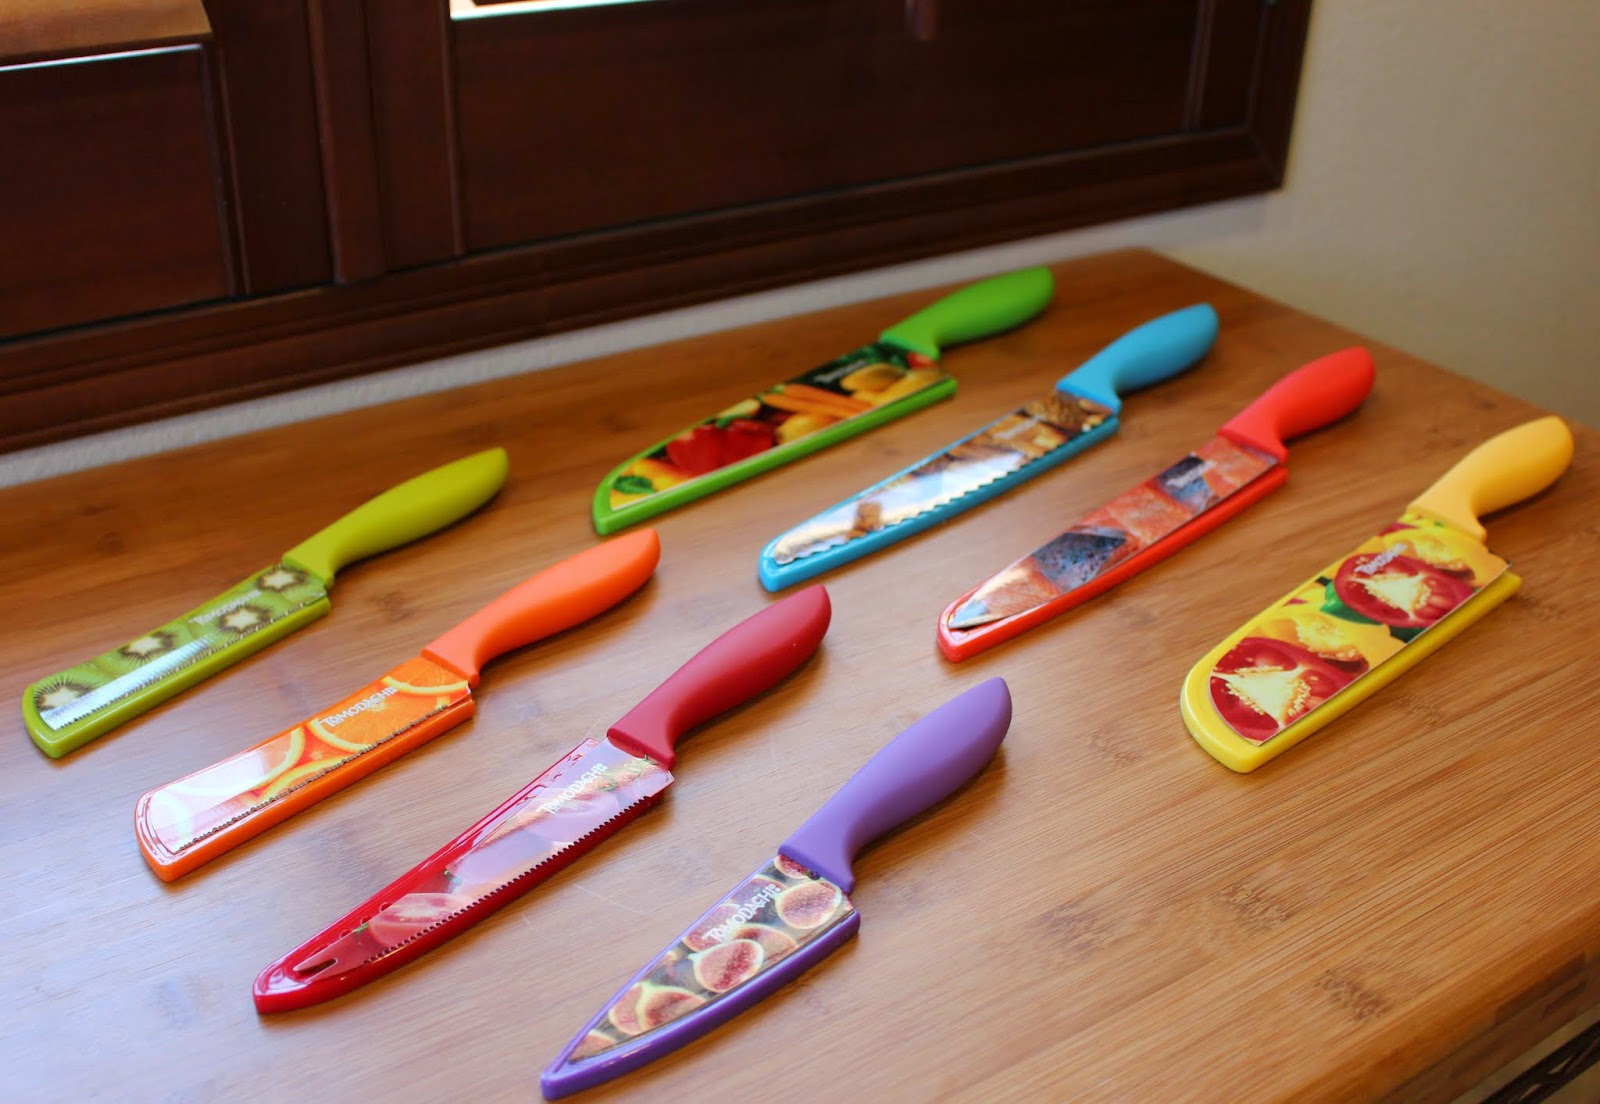 mehaffey moments: the coolest kitchen knives